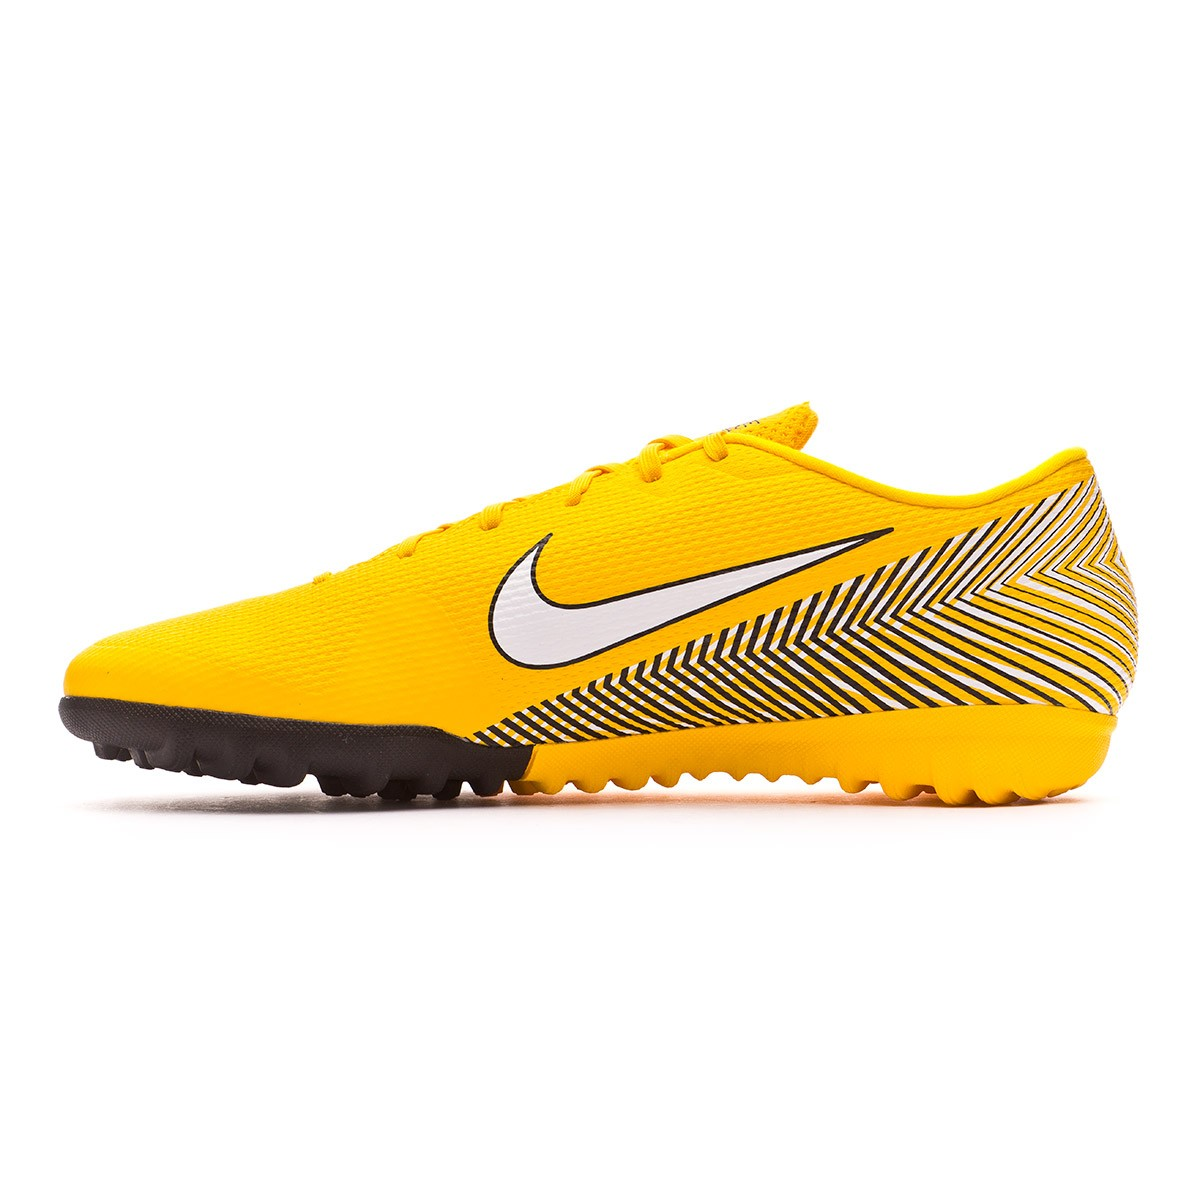 the best attitude aaabe 4d41b Scarpe Nike Mercurial VaporX XII Academy Turf Neymar Yellow-Black - Negozio  di calcio Fútbol Emotion